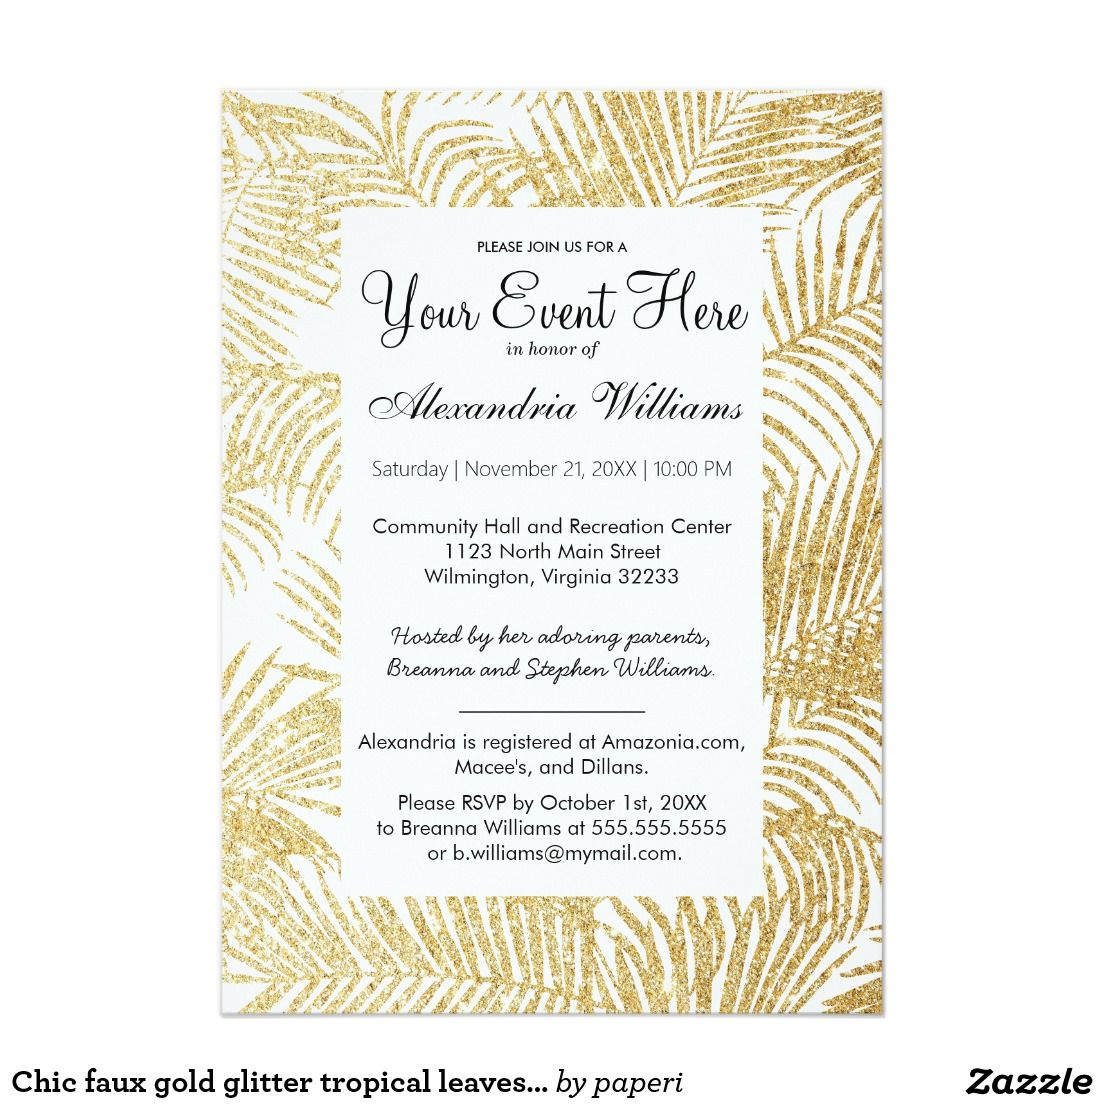 Chic Faux Gold Glitter Tropical Leaves Invitation Faux Gold